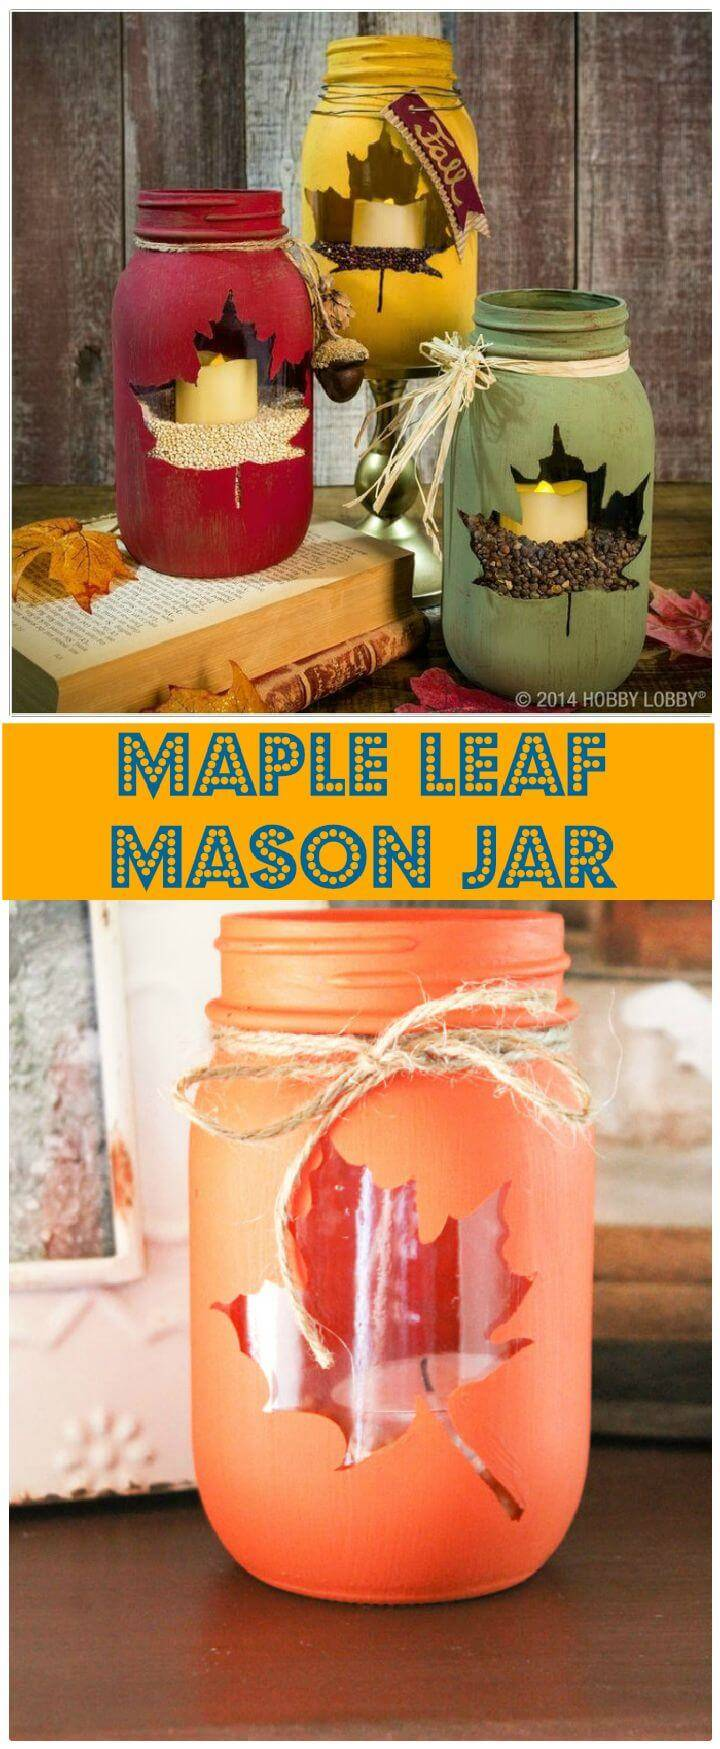 50 Unique Diy Mason Jar Crafts For Fall Decor Page 3 Of